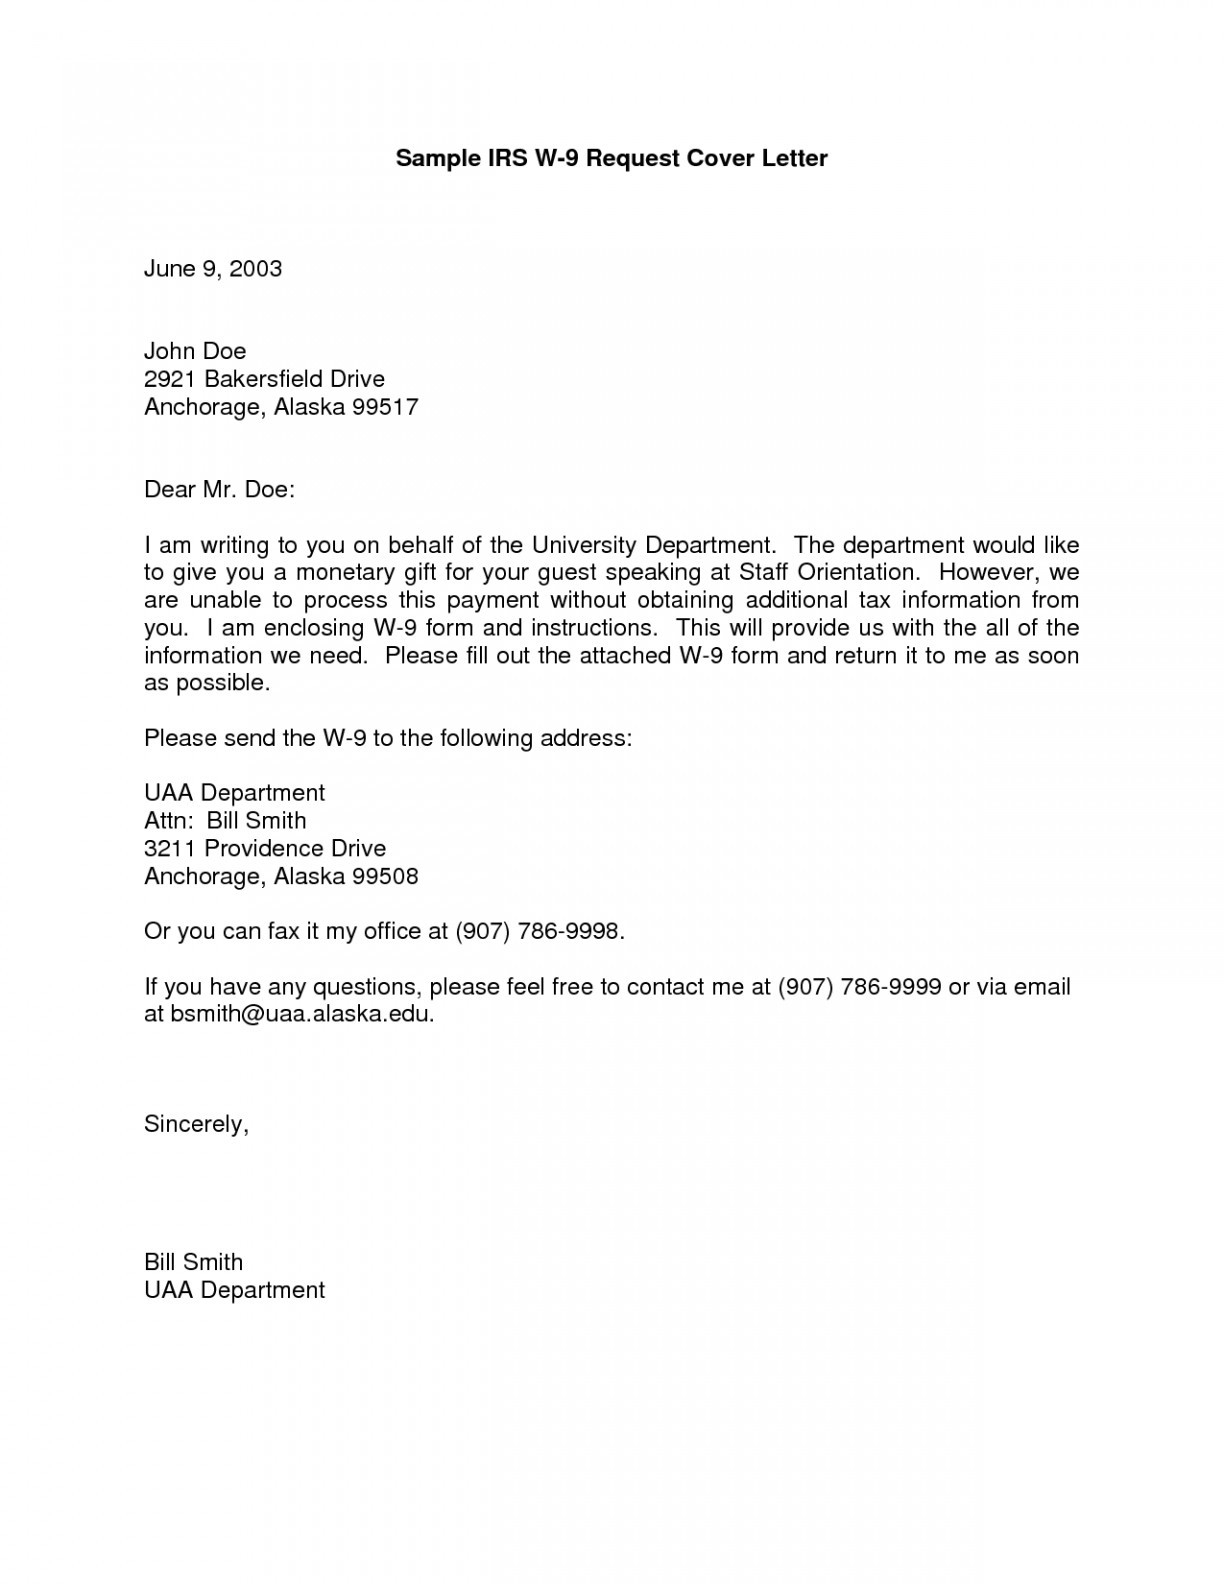 Letter Template to Irs - Irs Appeal Letter Sample Beautiful Irs Appeal Letter Sample Luxury